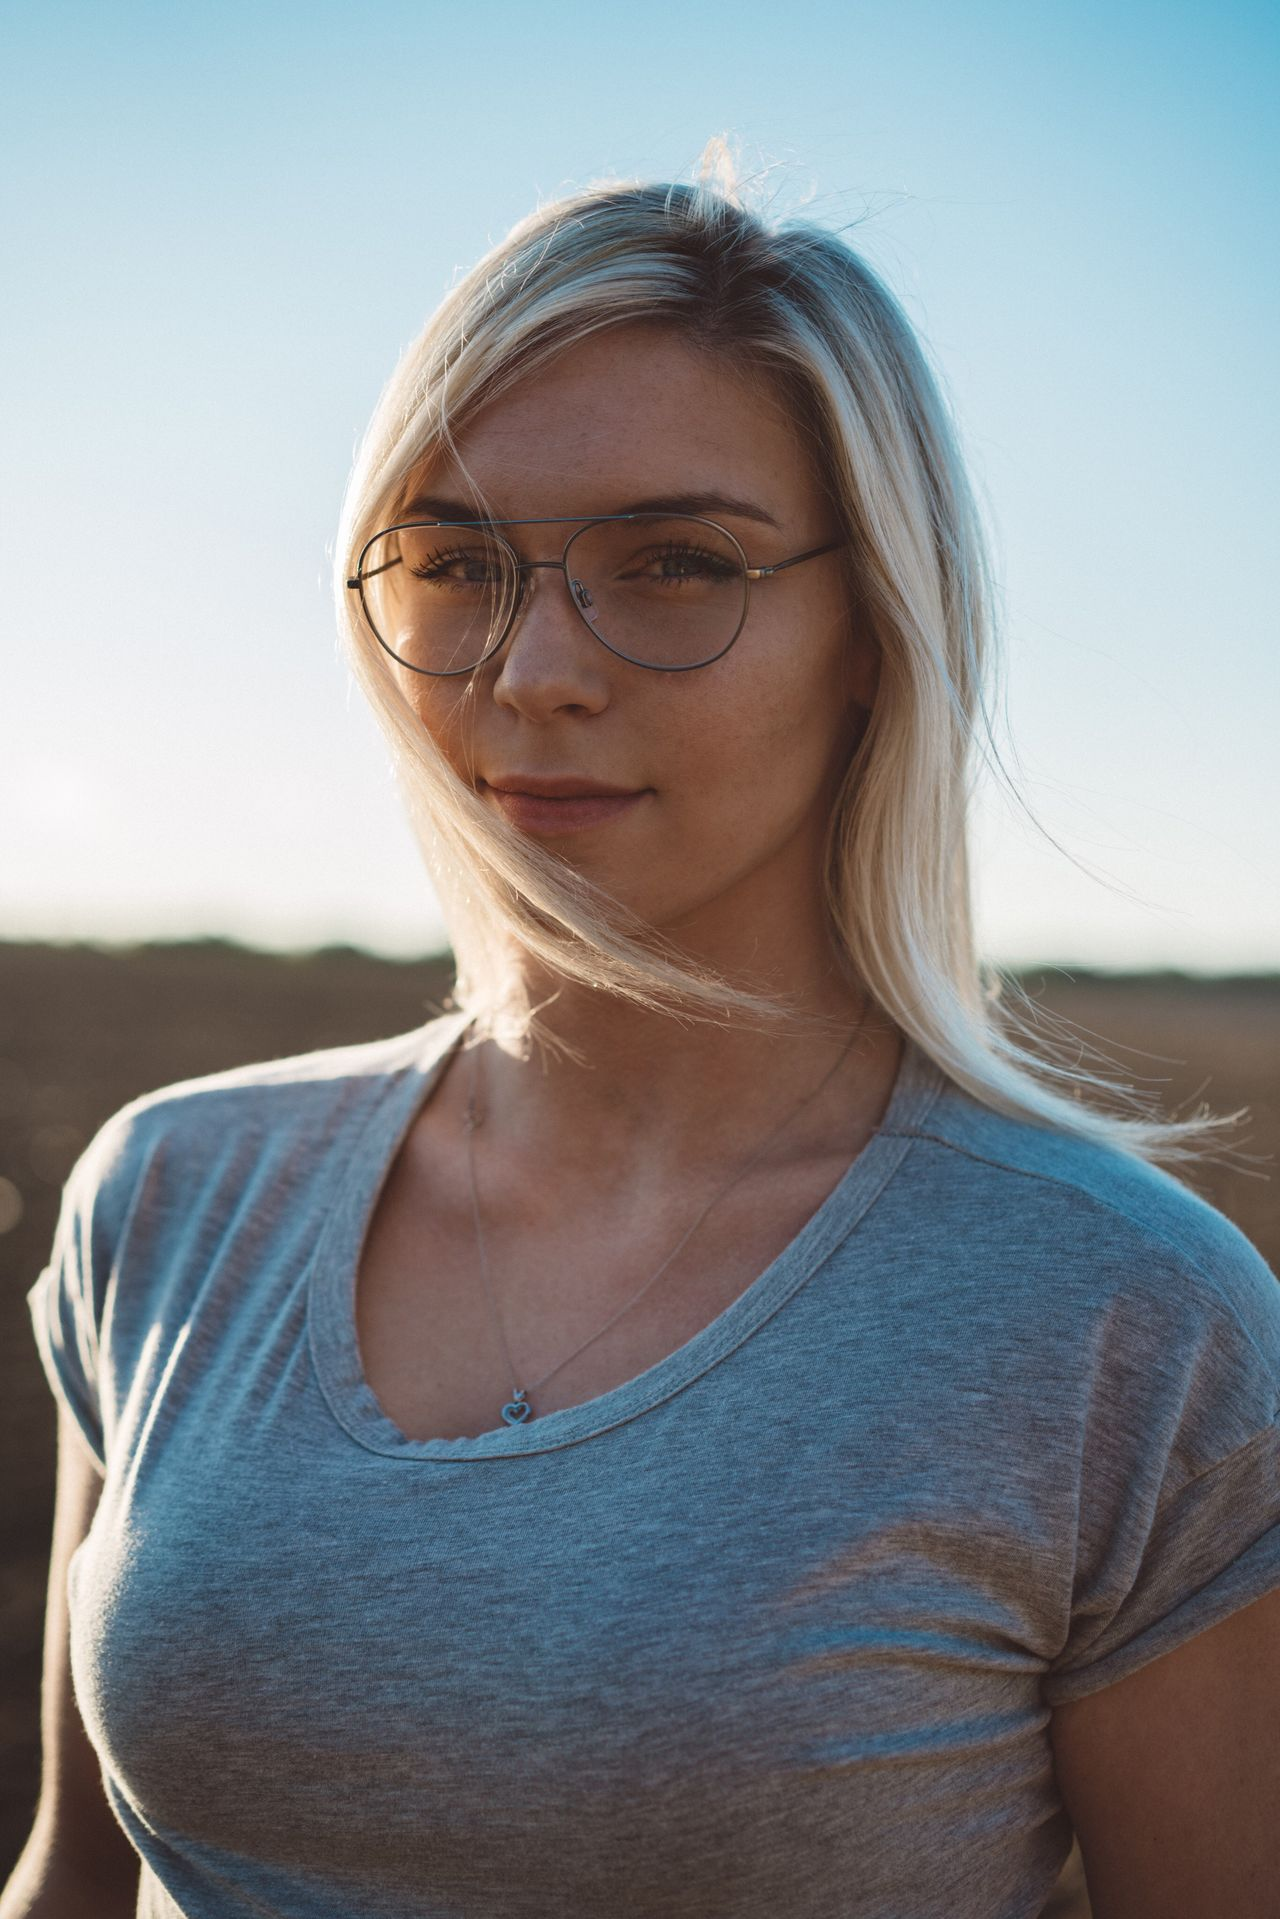 One Person Front View Young Adult Blond Hair Real People Portrait Young Women Eyeglasses  Beautiful Woman Clear Sky Outdoors Day Nature Sky People The Portraitist - 2017 EyeEm Awards